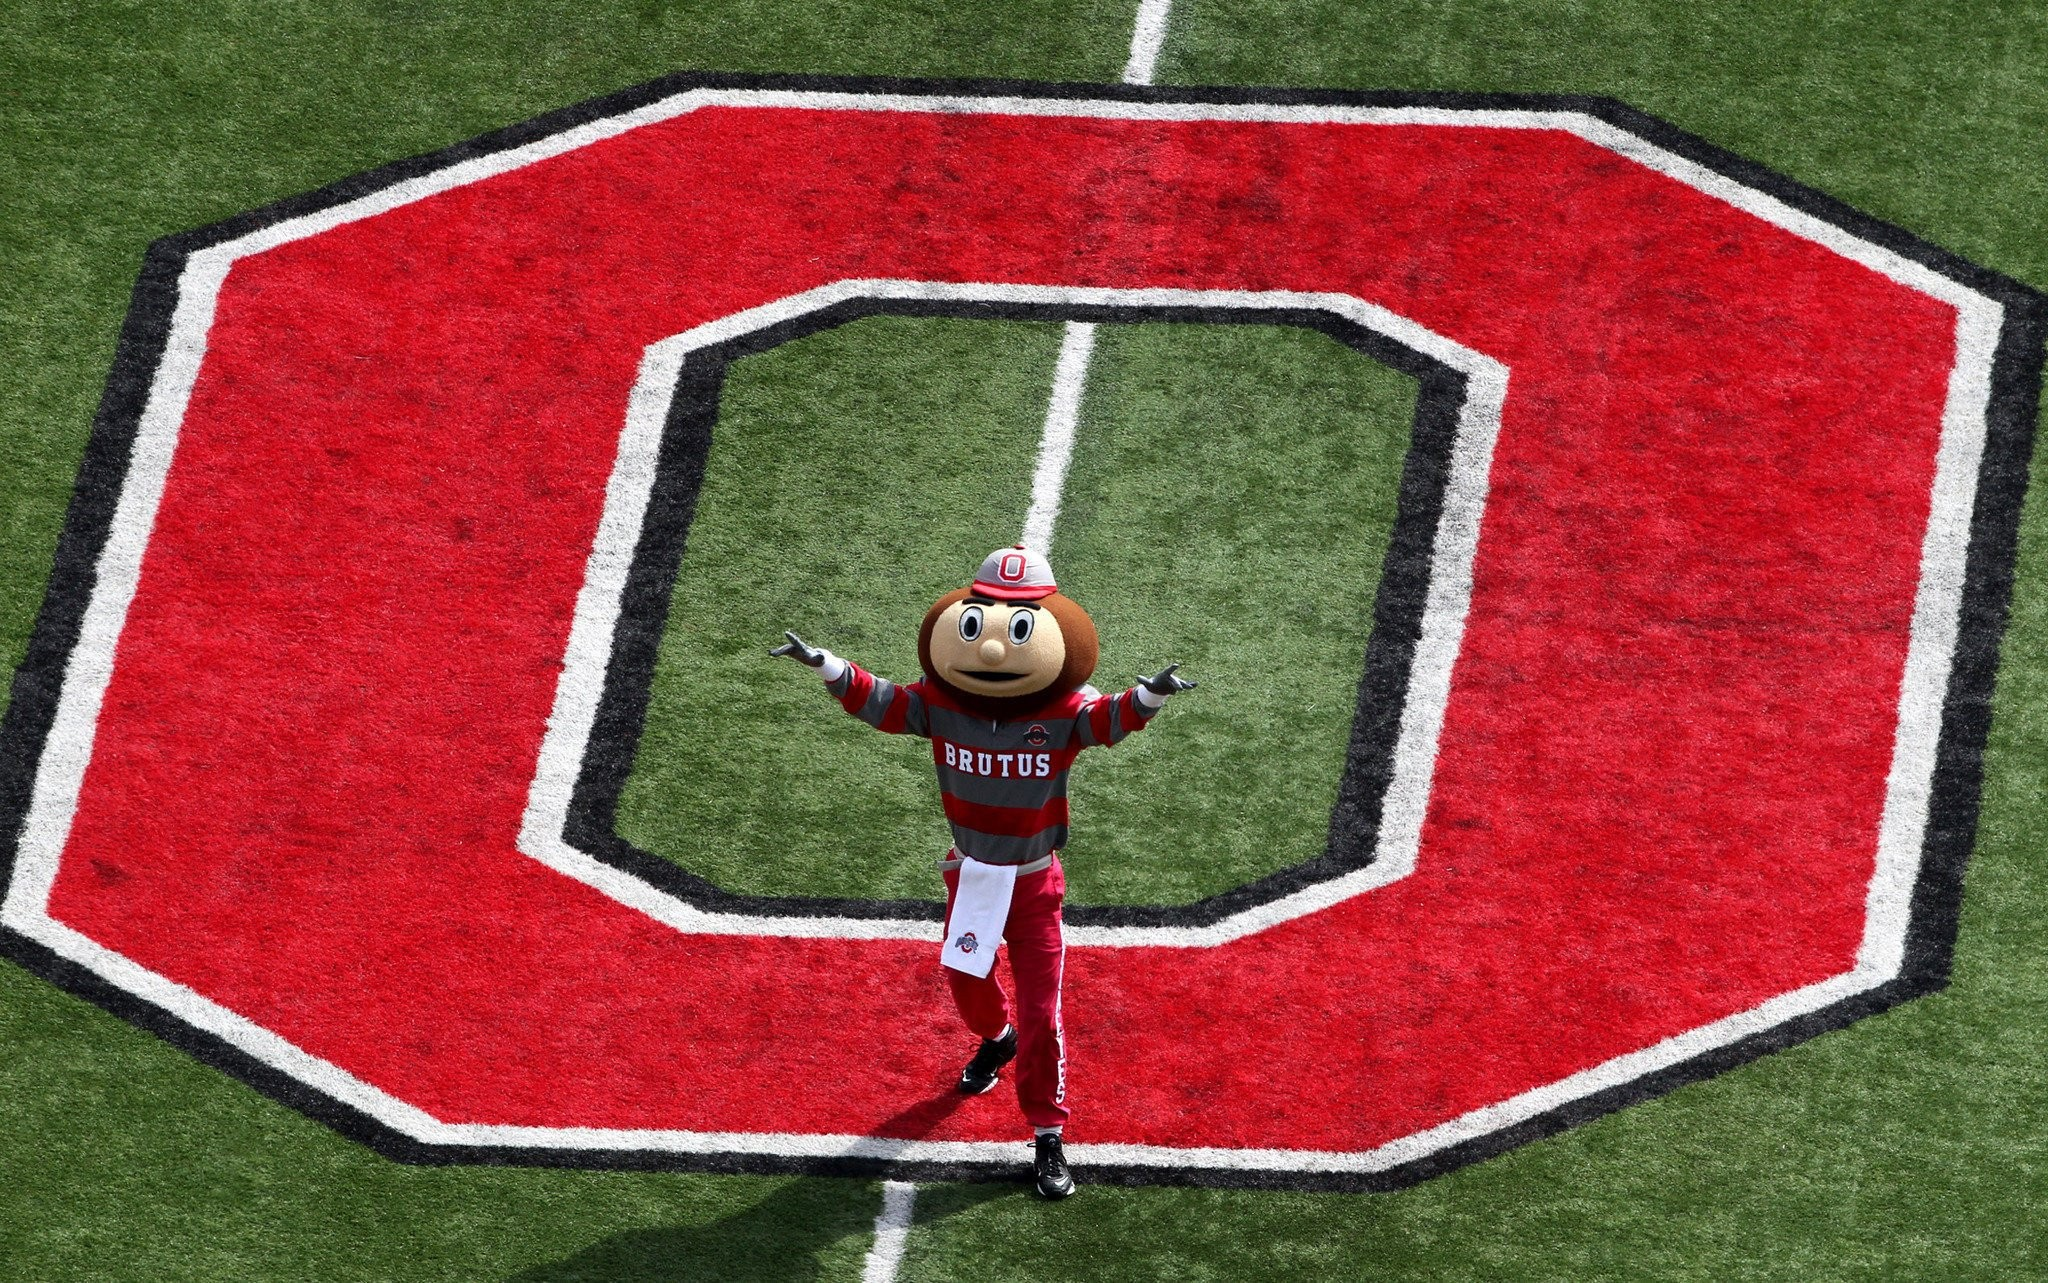 Get the latest Ohio State Buckeyes news scores stats standings rumors and more from ESPN